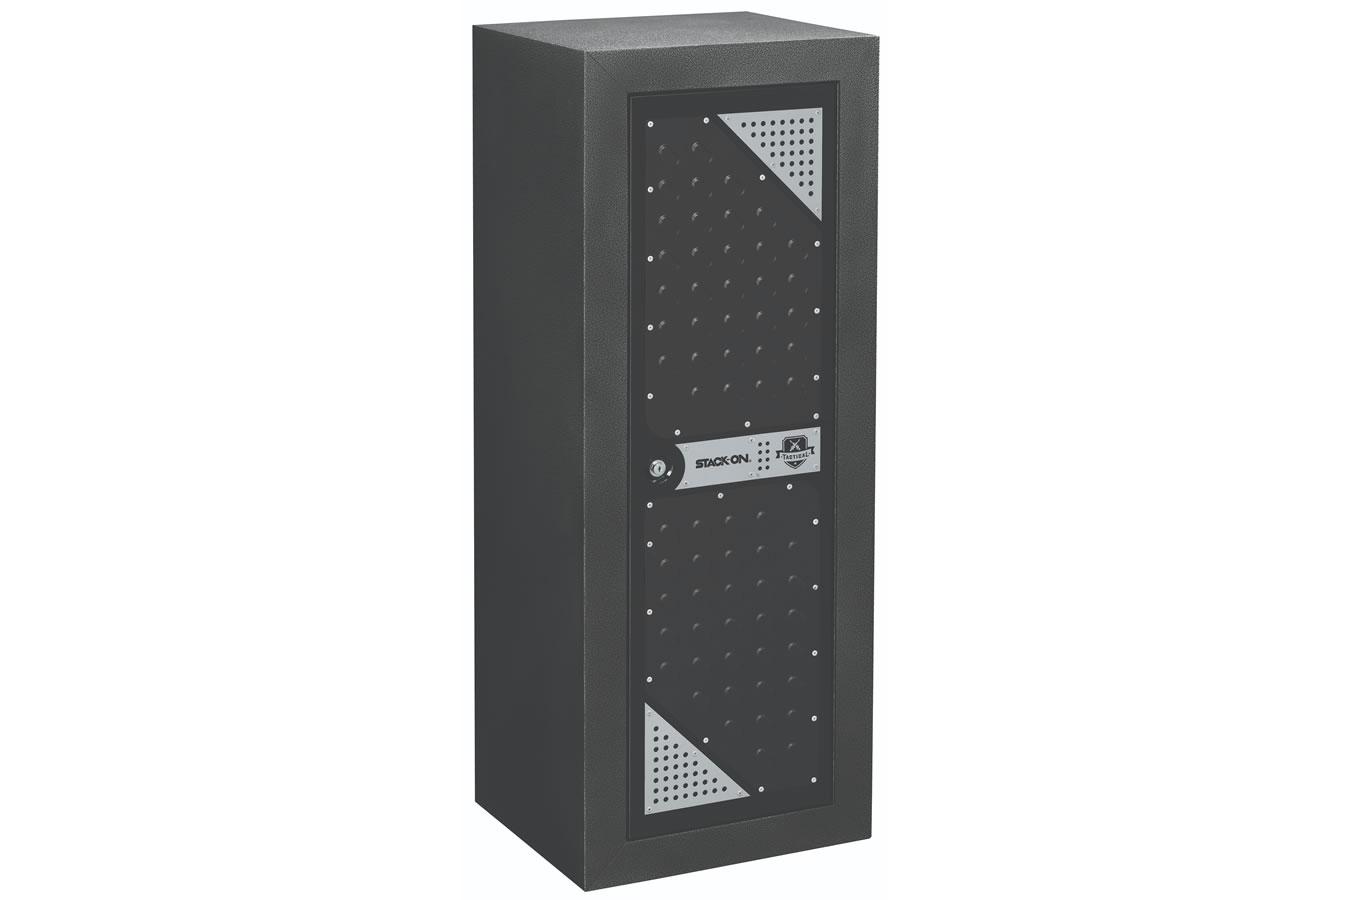 16 GUN TACTICAL FIREARMS SECURITY CABINET